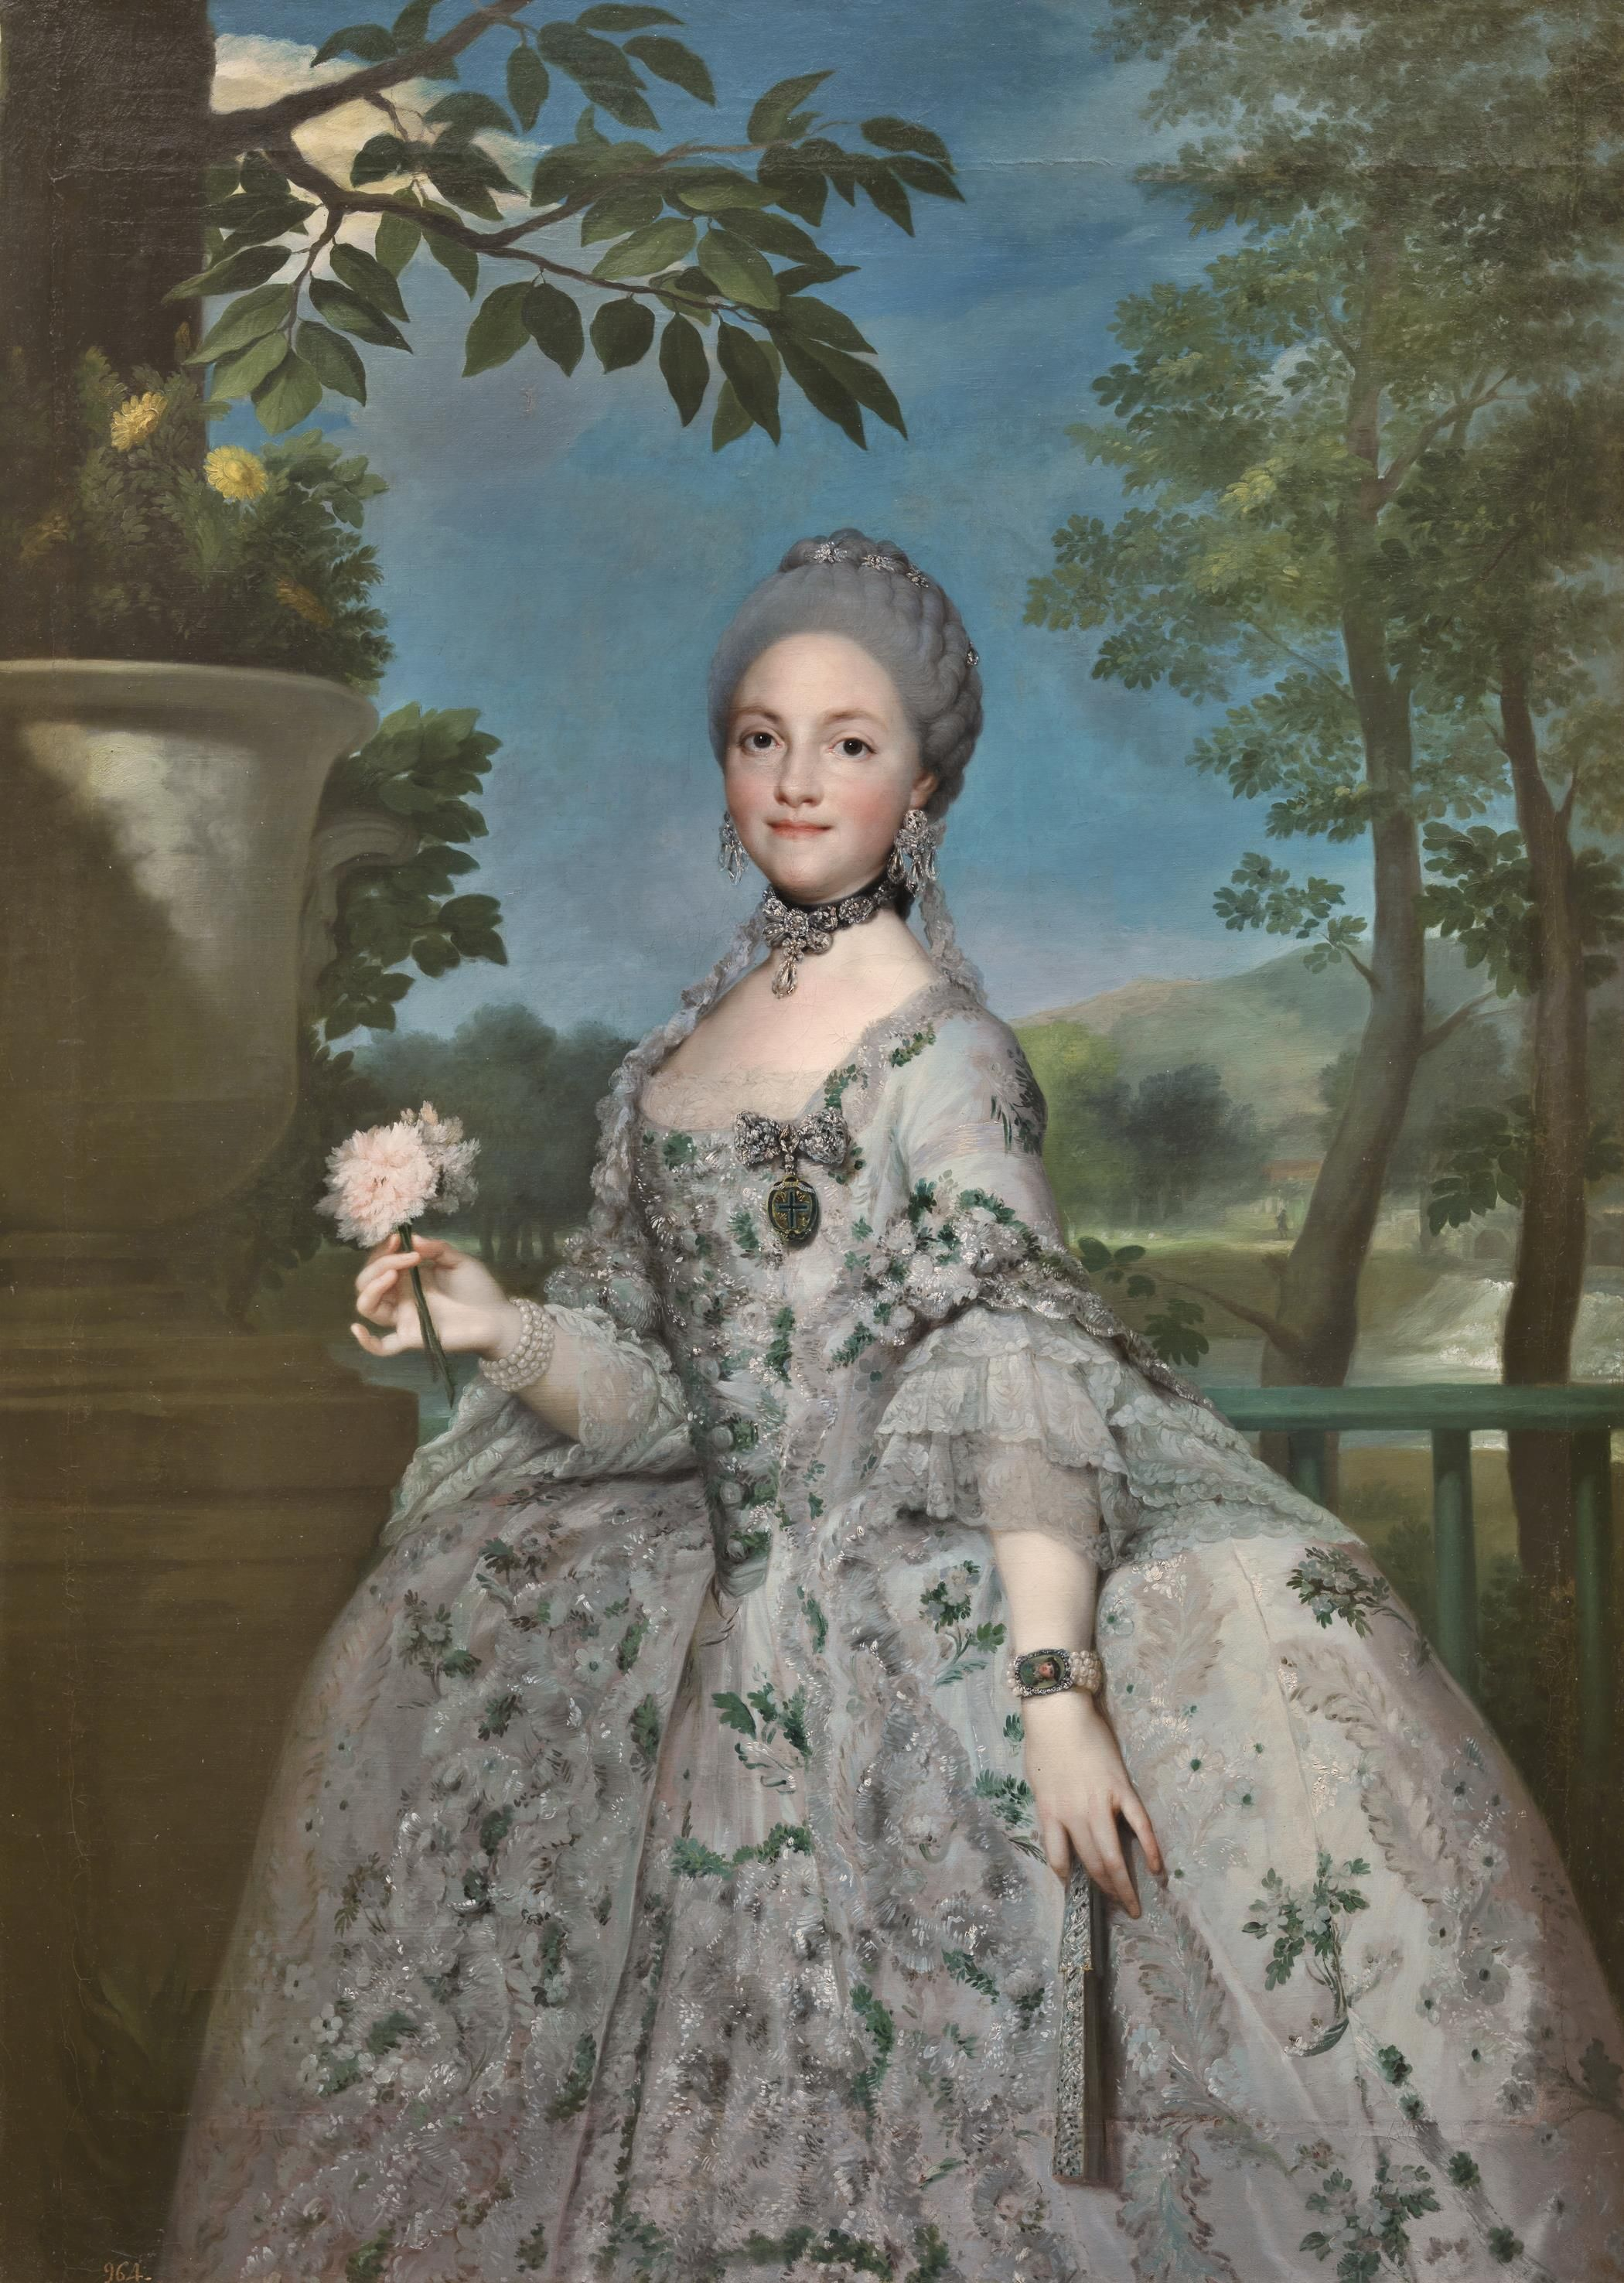 Salon Maria Luisa Maria Luisa As Princess Of Asturias In The Gardens Of Aranjuez